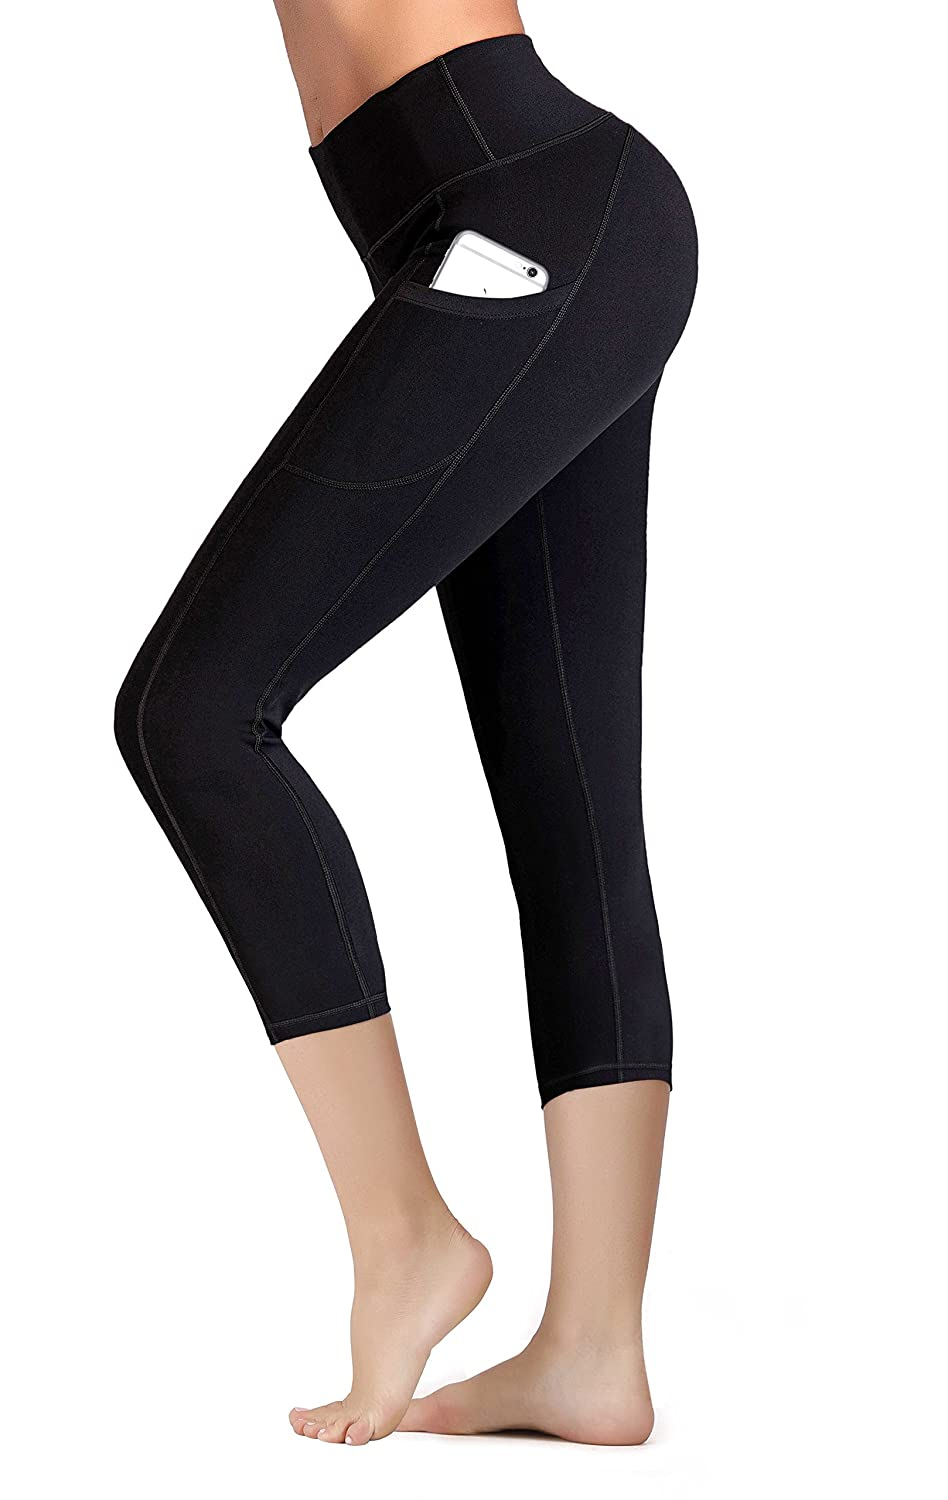 b68d9e70af The high quality activewear is affordable and accessible, perfect for  fitness enthusiasts and everyday athleisure. Operating at the cross section  between ...